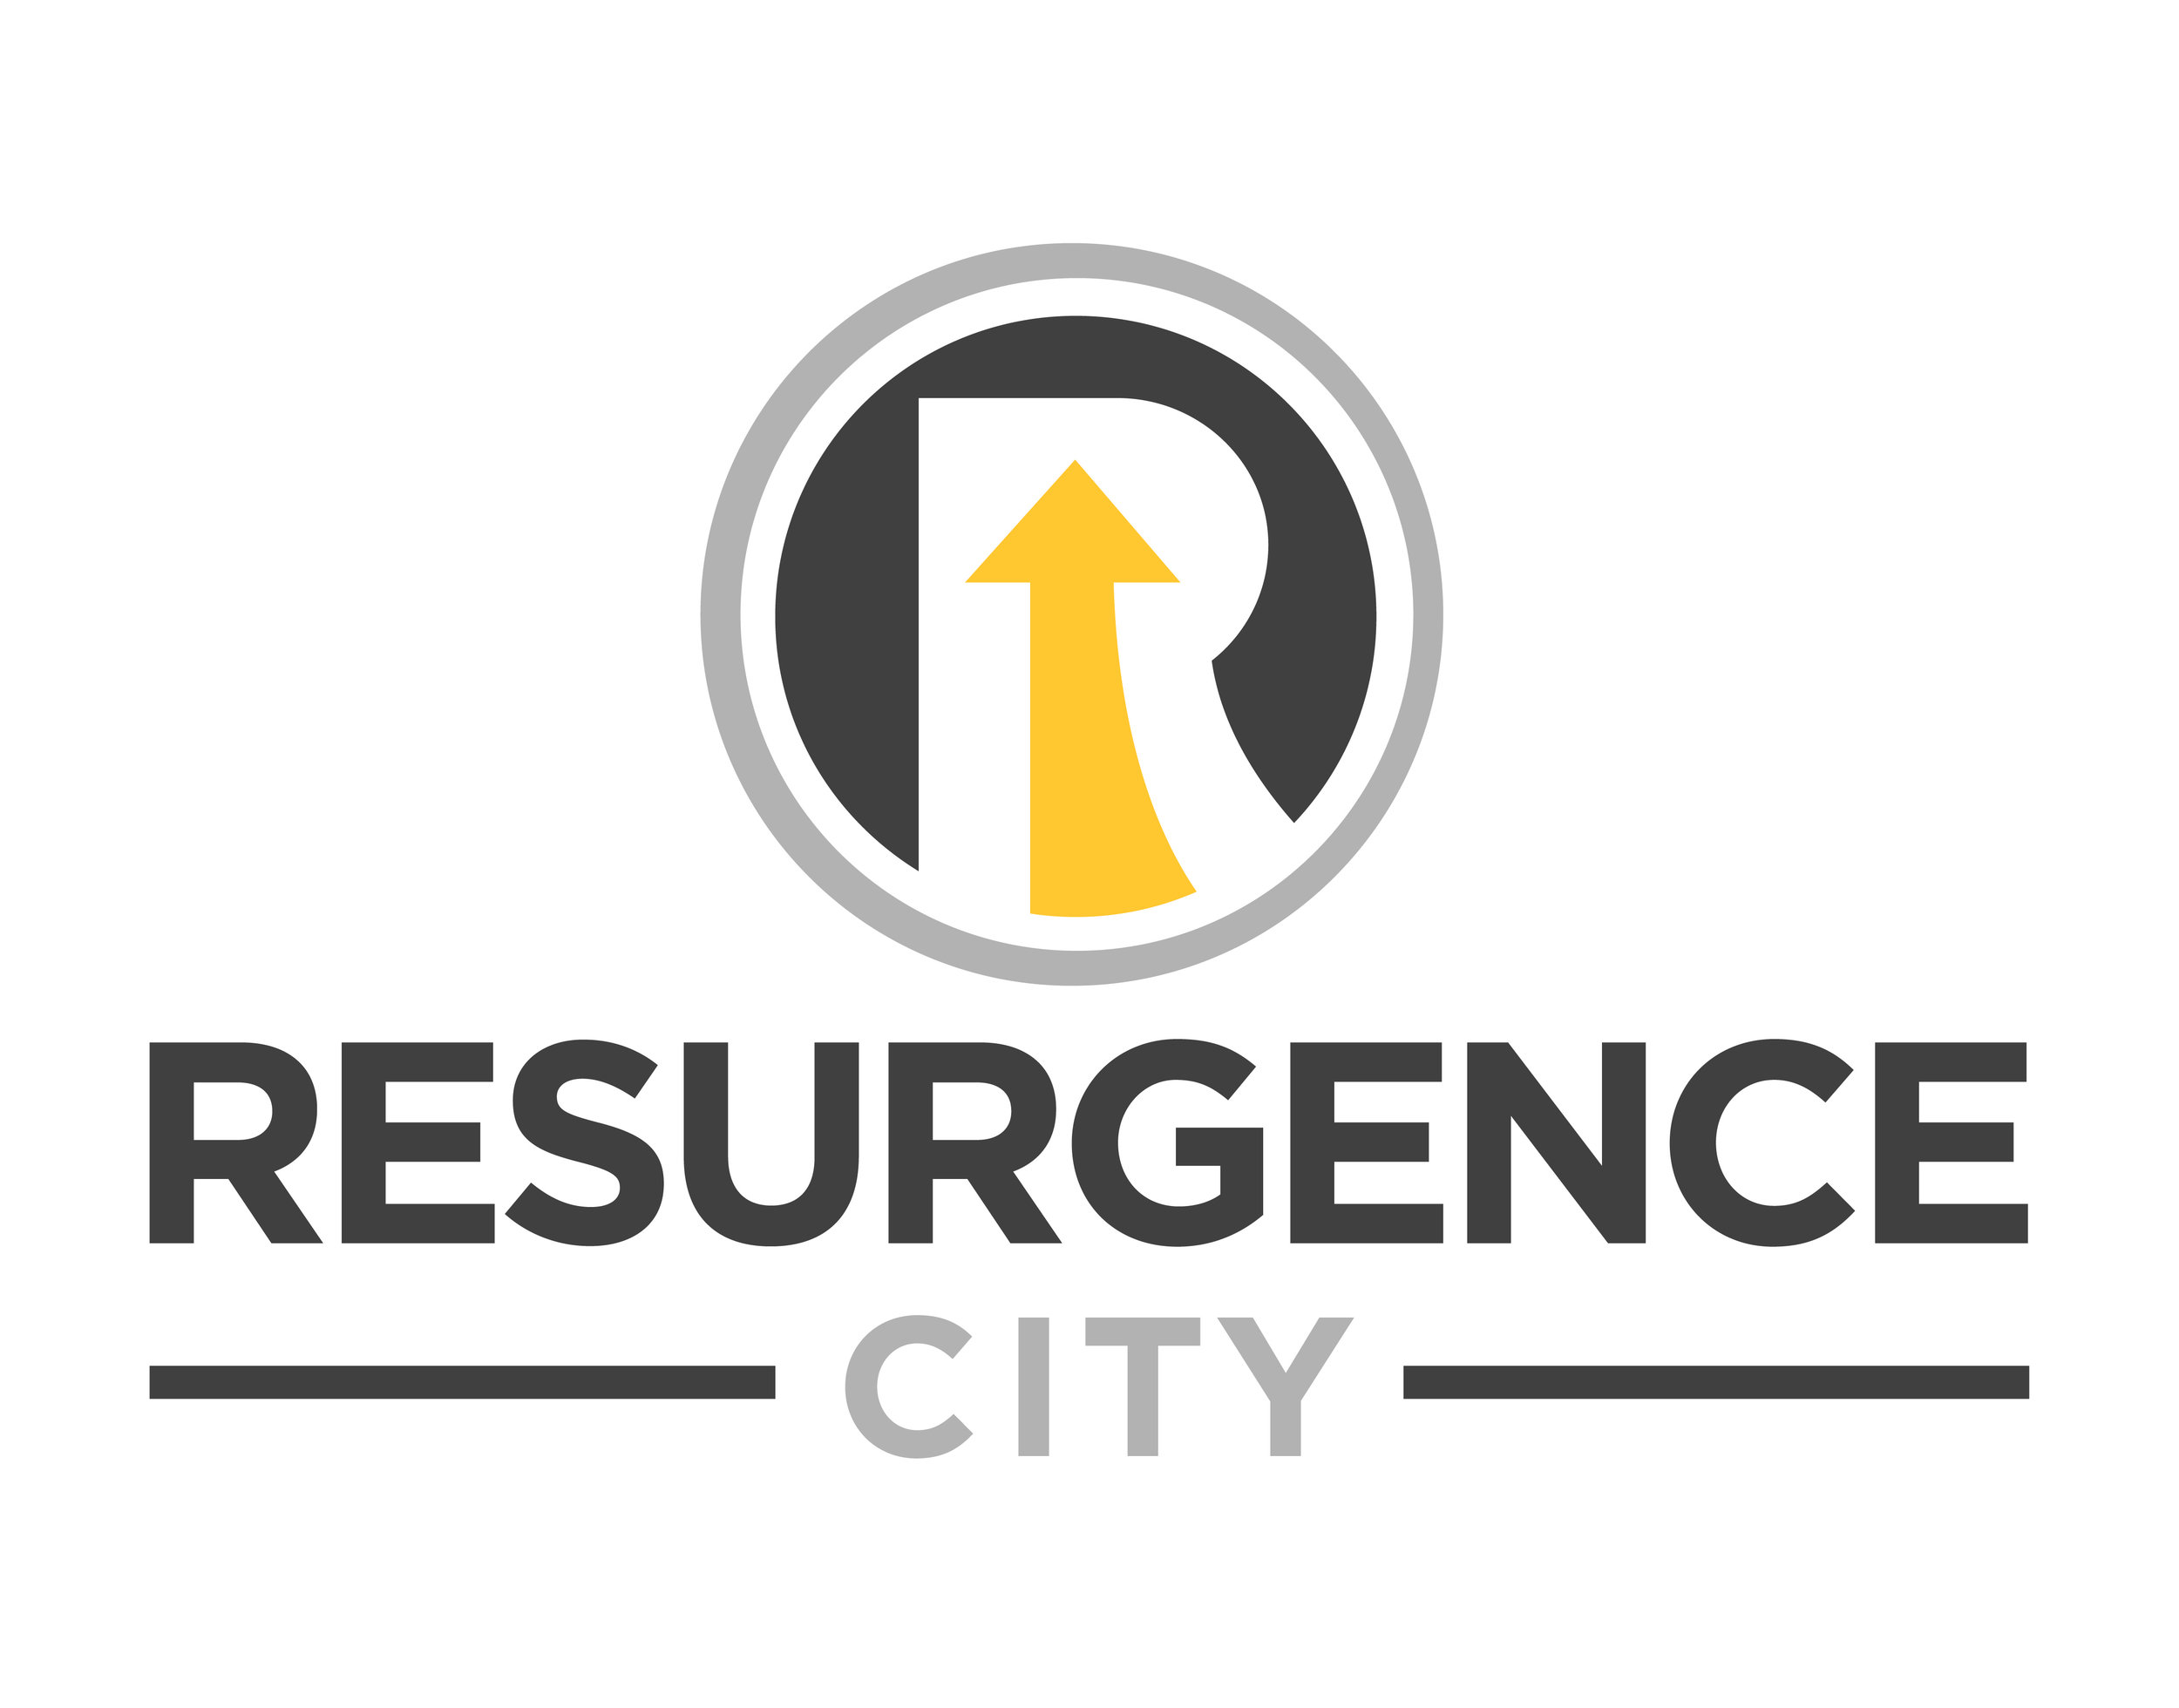 How To Give to Resurgence City - During our startup phase as a church, the Wesleyan Church of Orchard Park oversees our contributions and finances that come our way. OPWC has been a church with a great reputation throughout the Western NY for 125 years and we feel honored that they are walking beside us to help keep us accountable.To Give electronically to Resurgence City click on the give button below.Thank you so much for your willingness to invest in this new ministry that is starting in the City of Buffalo!